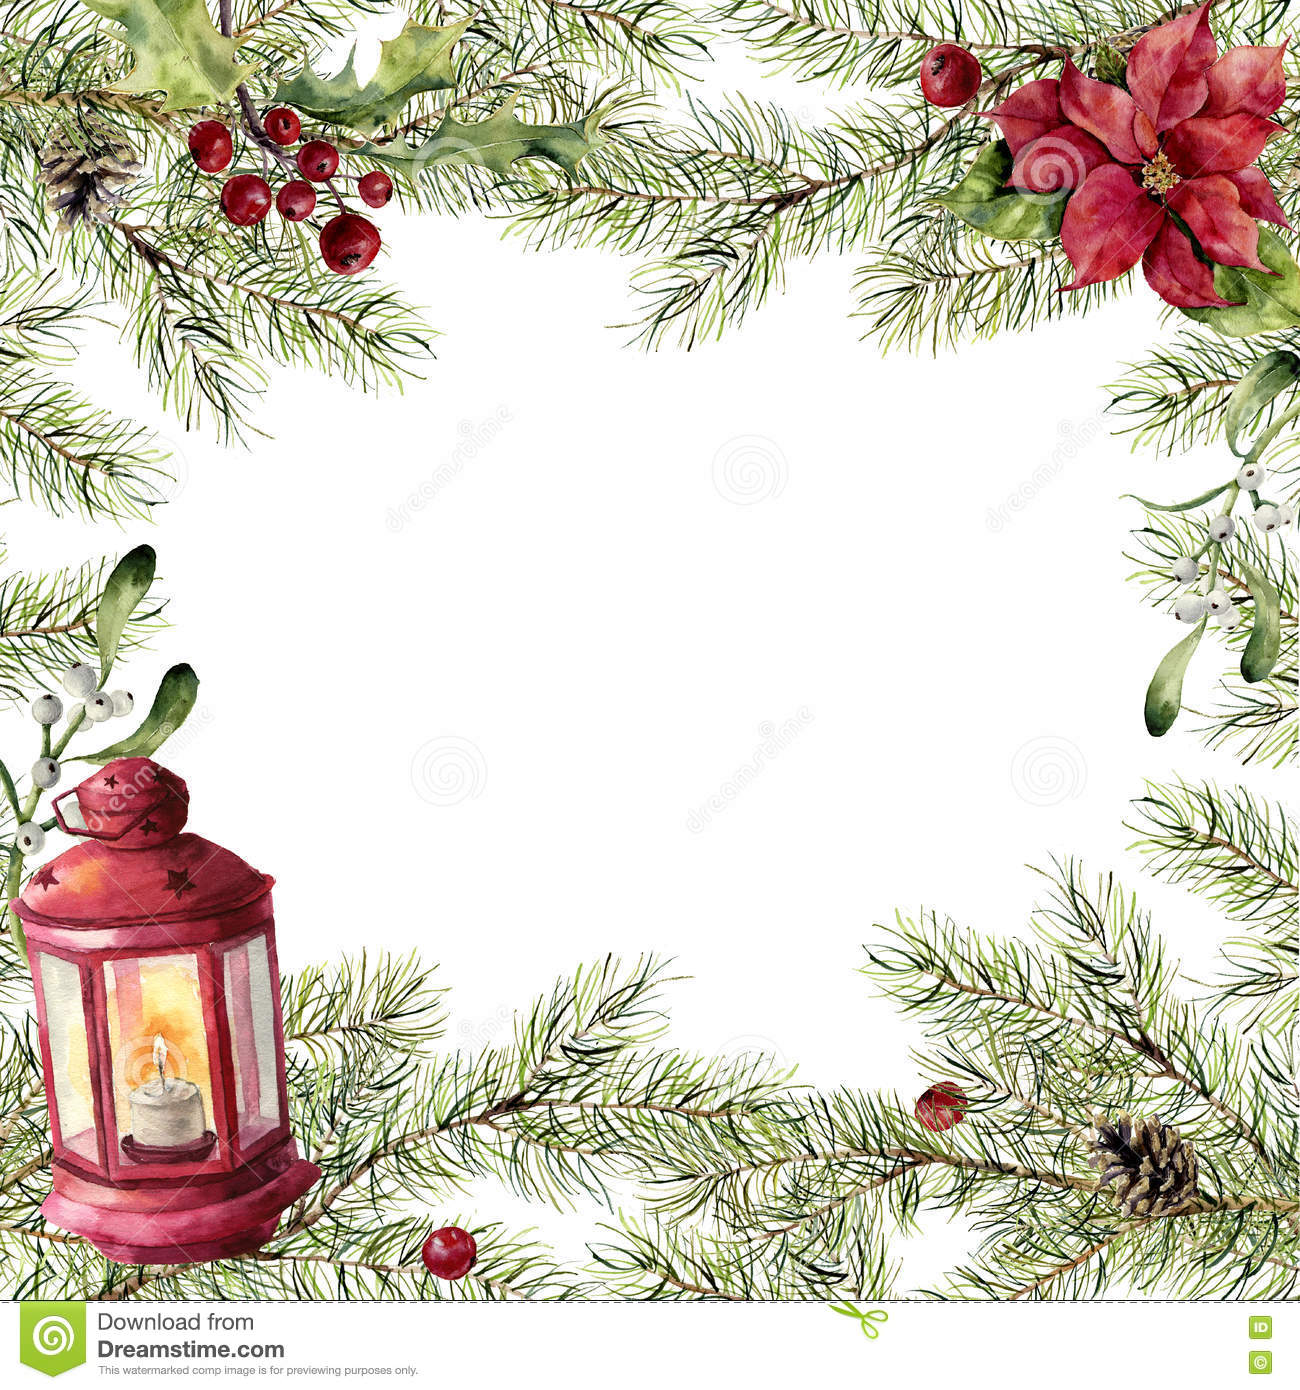 Watercolor Christmas Card Fir Branch With Holly